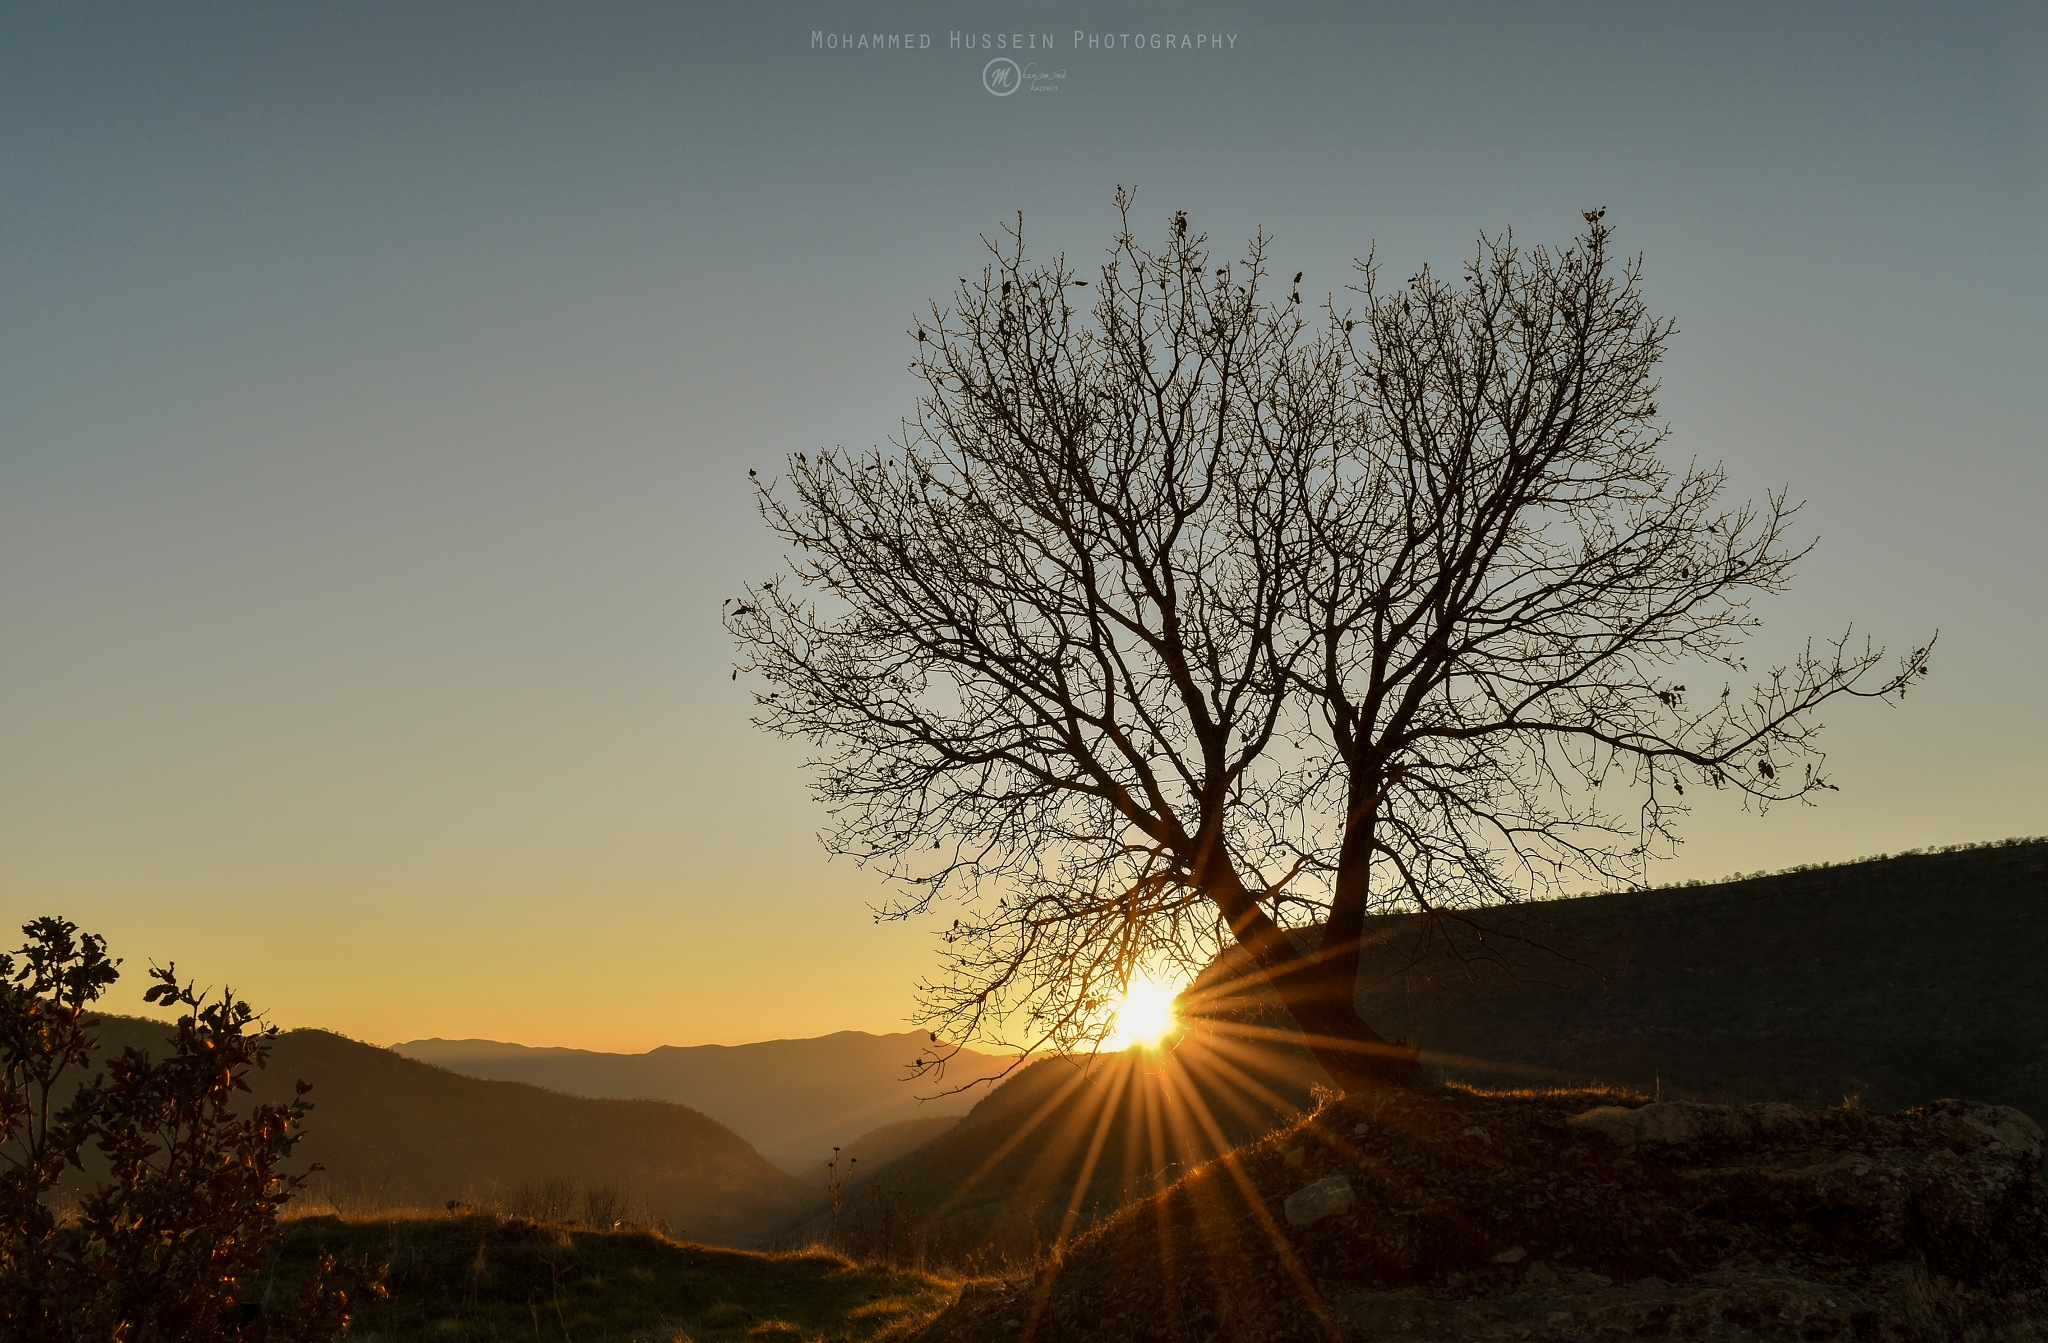 Sunset in Kurdistan by Mohammed Hussein Photography